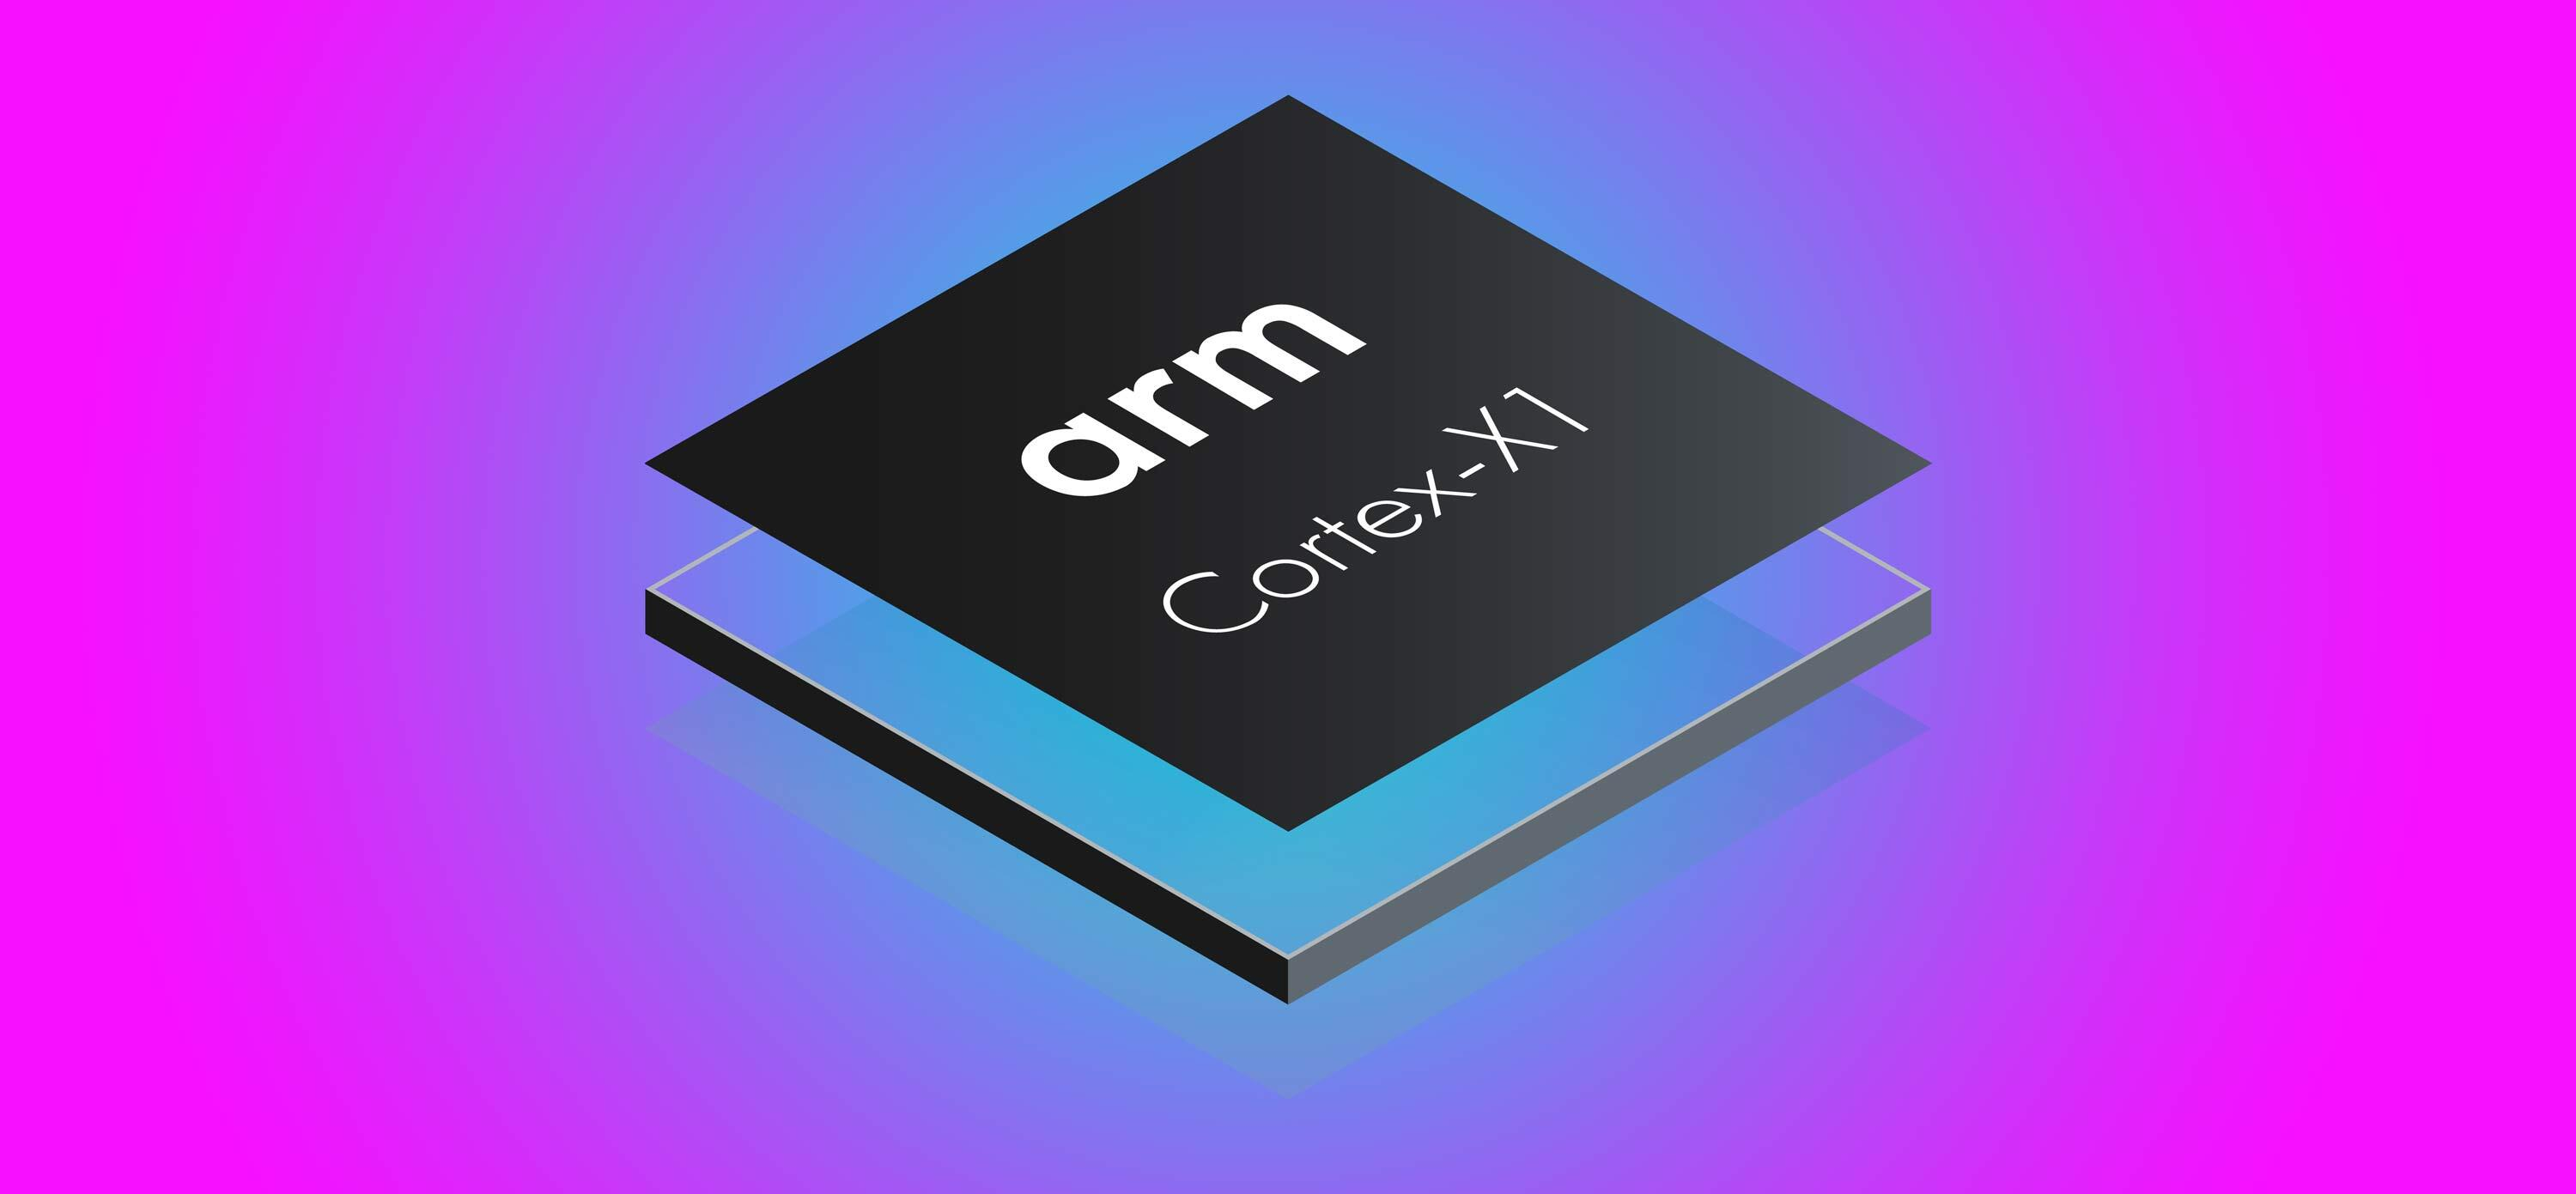 Arm Cortex-X1 chip design